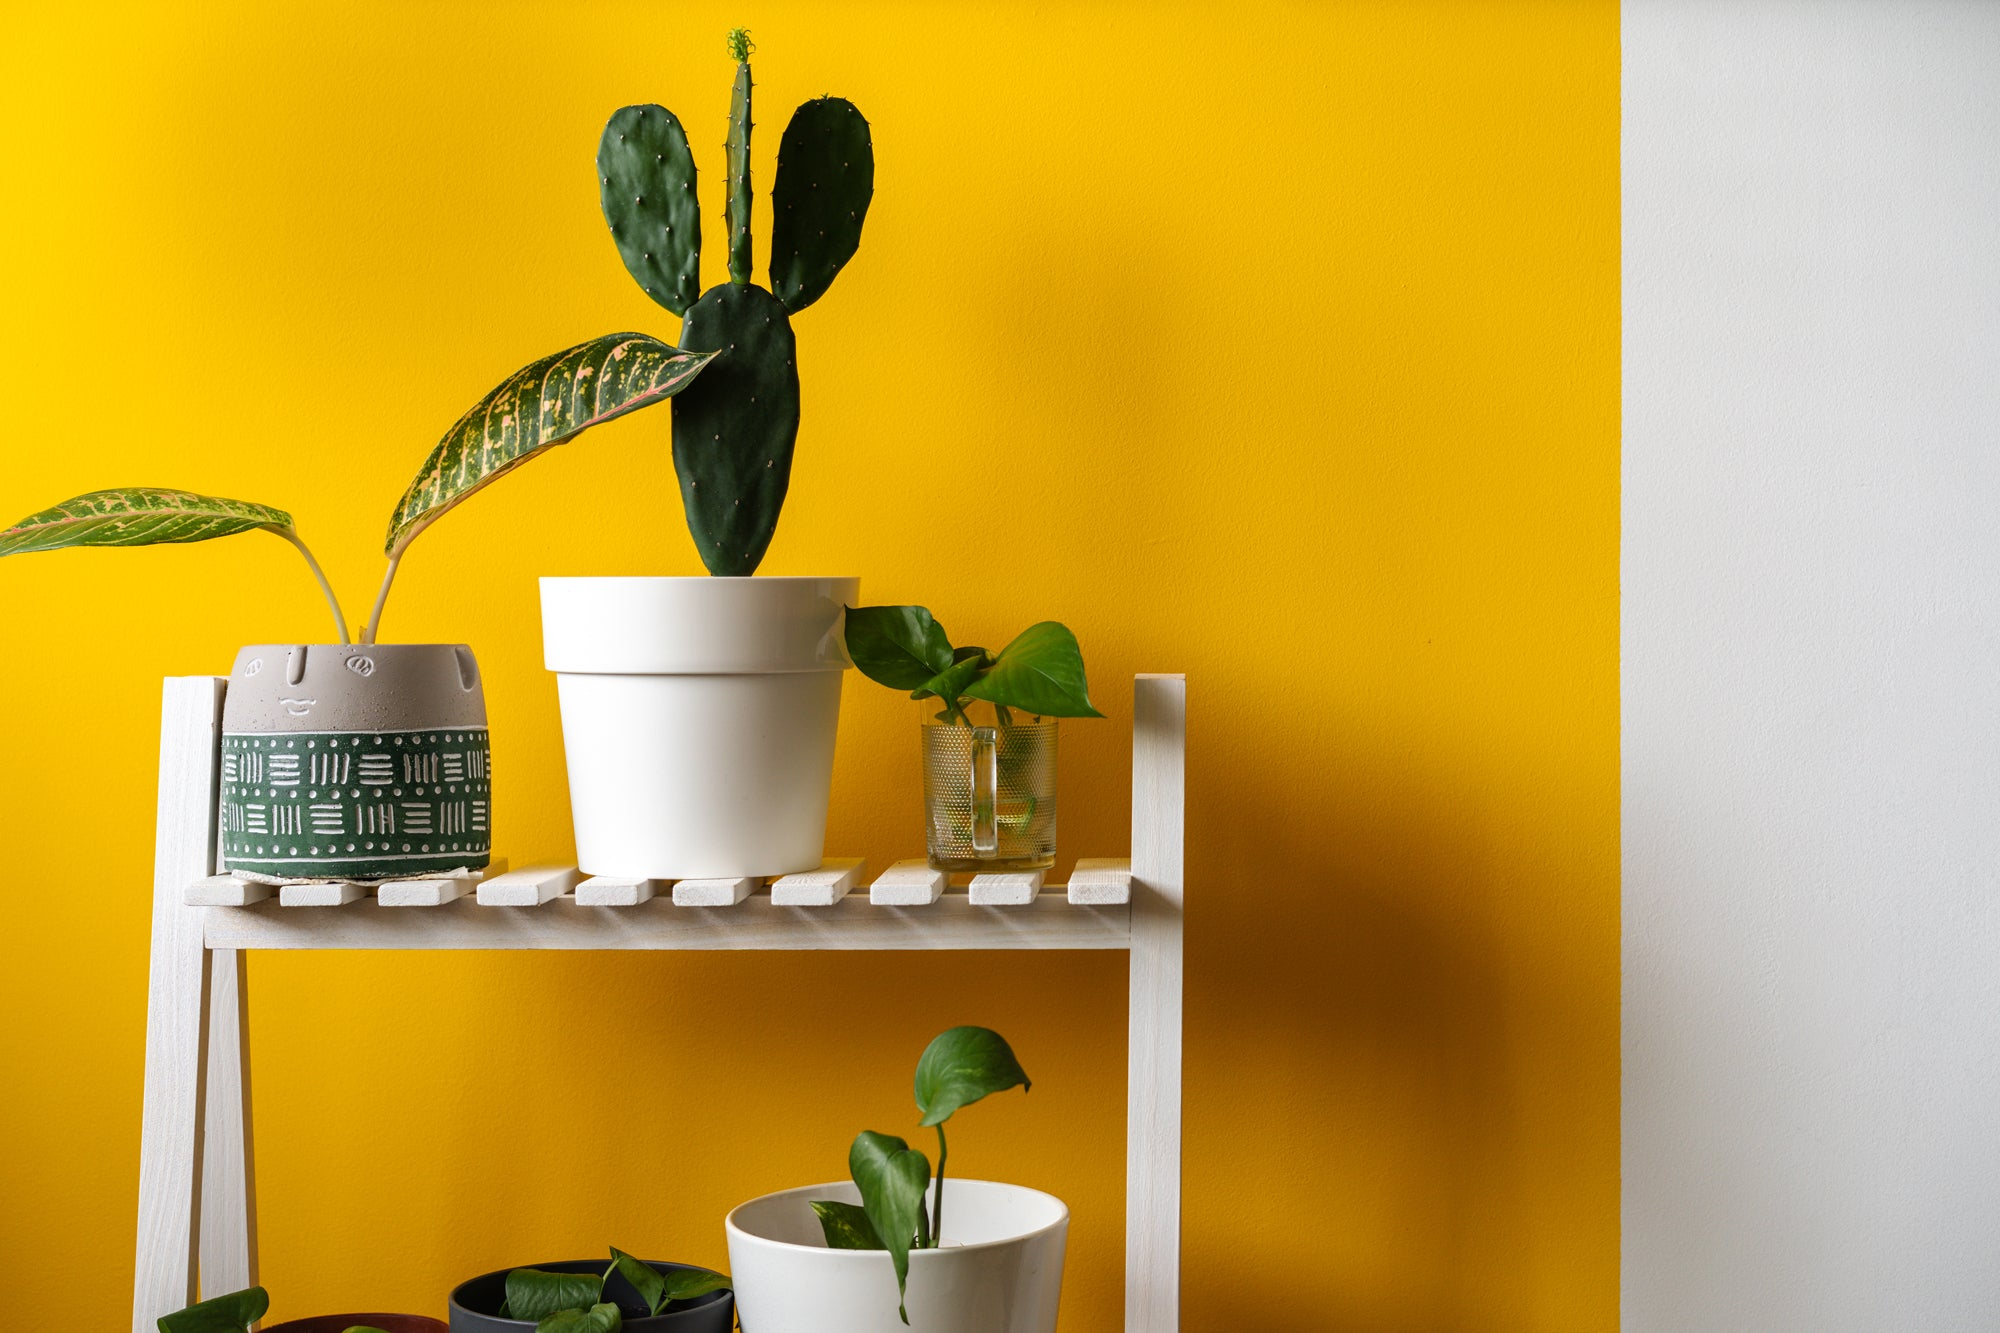 house plants against yellow wall